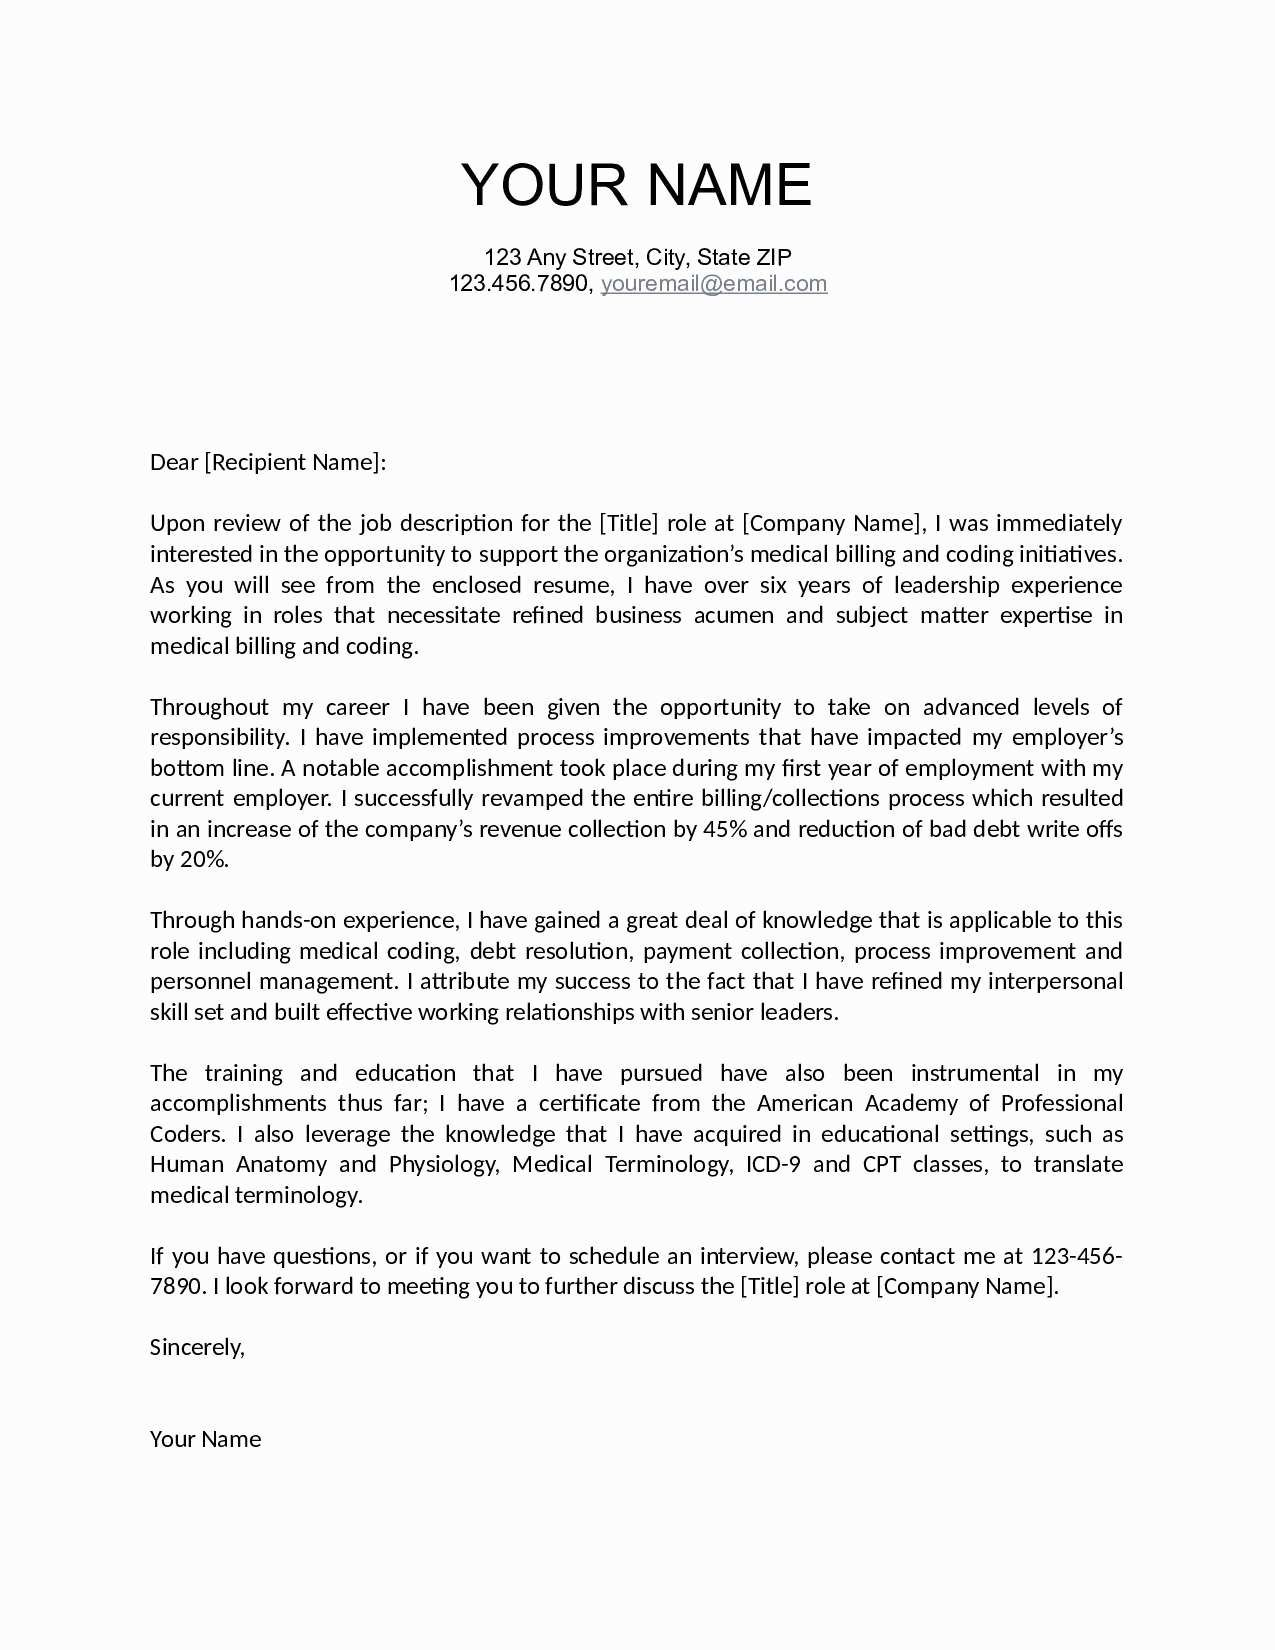 Free Demand Letter Template - Letter Resolution Template